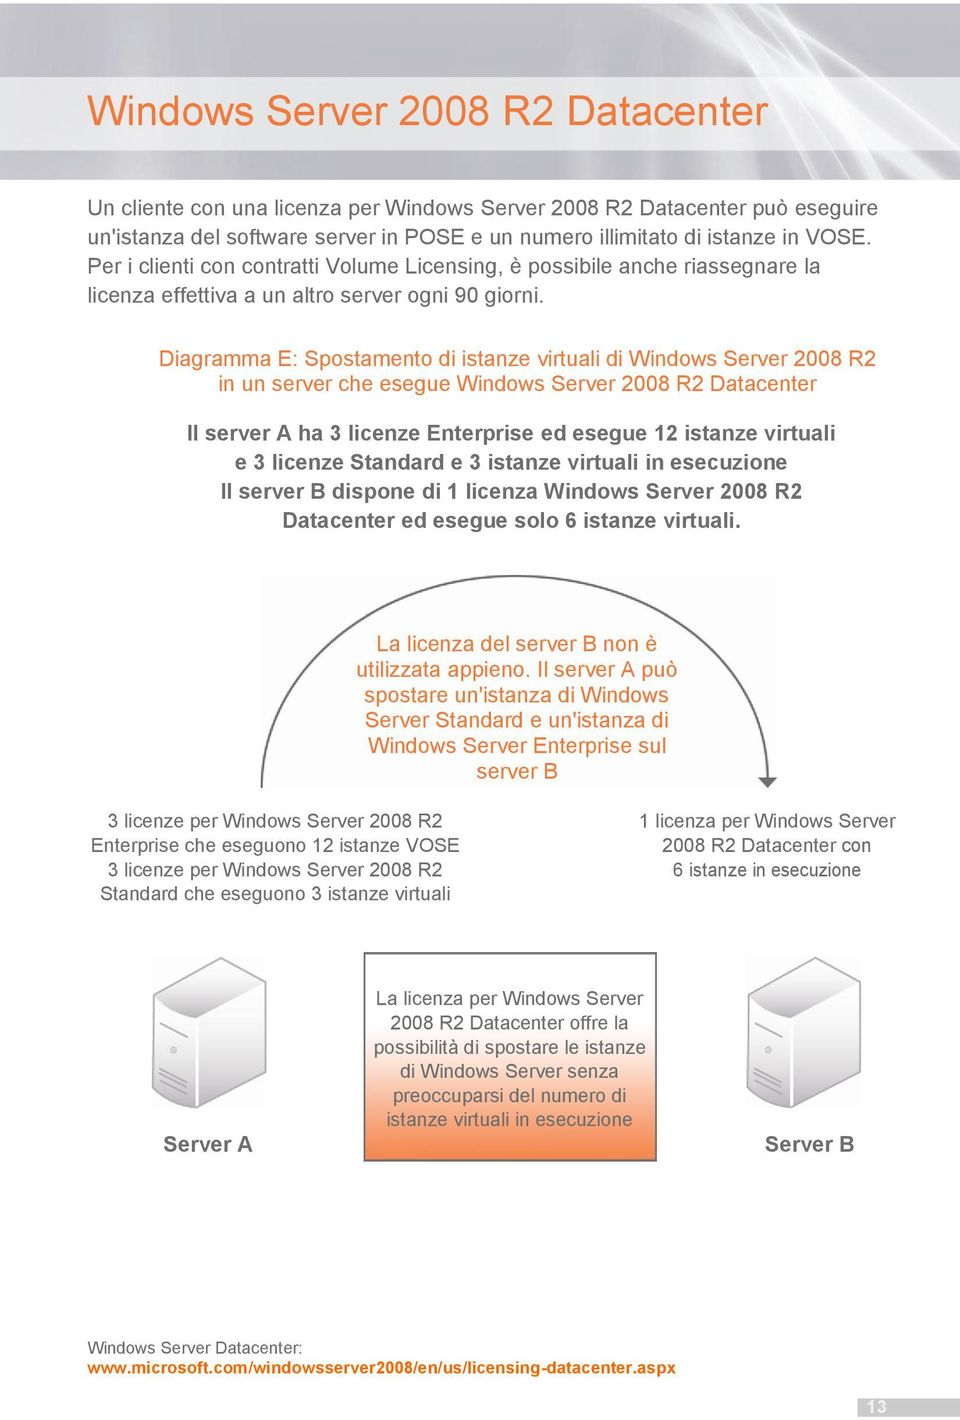 Diagramma E: Spostamento di istanze virtuali di Windows Server 2008 R2 in un server che esegue Windows Server 2008 R2 Datacenter Il server A ha 3 licenze Enterprise ed esegue 12 istanze virtuali e 3